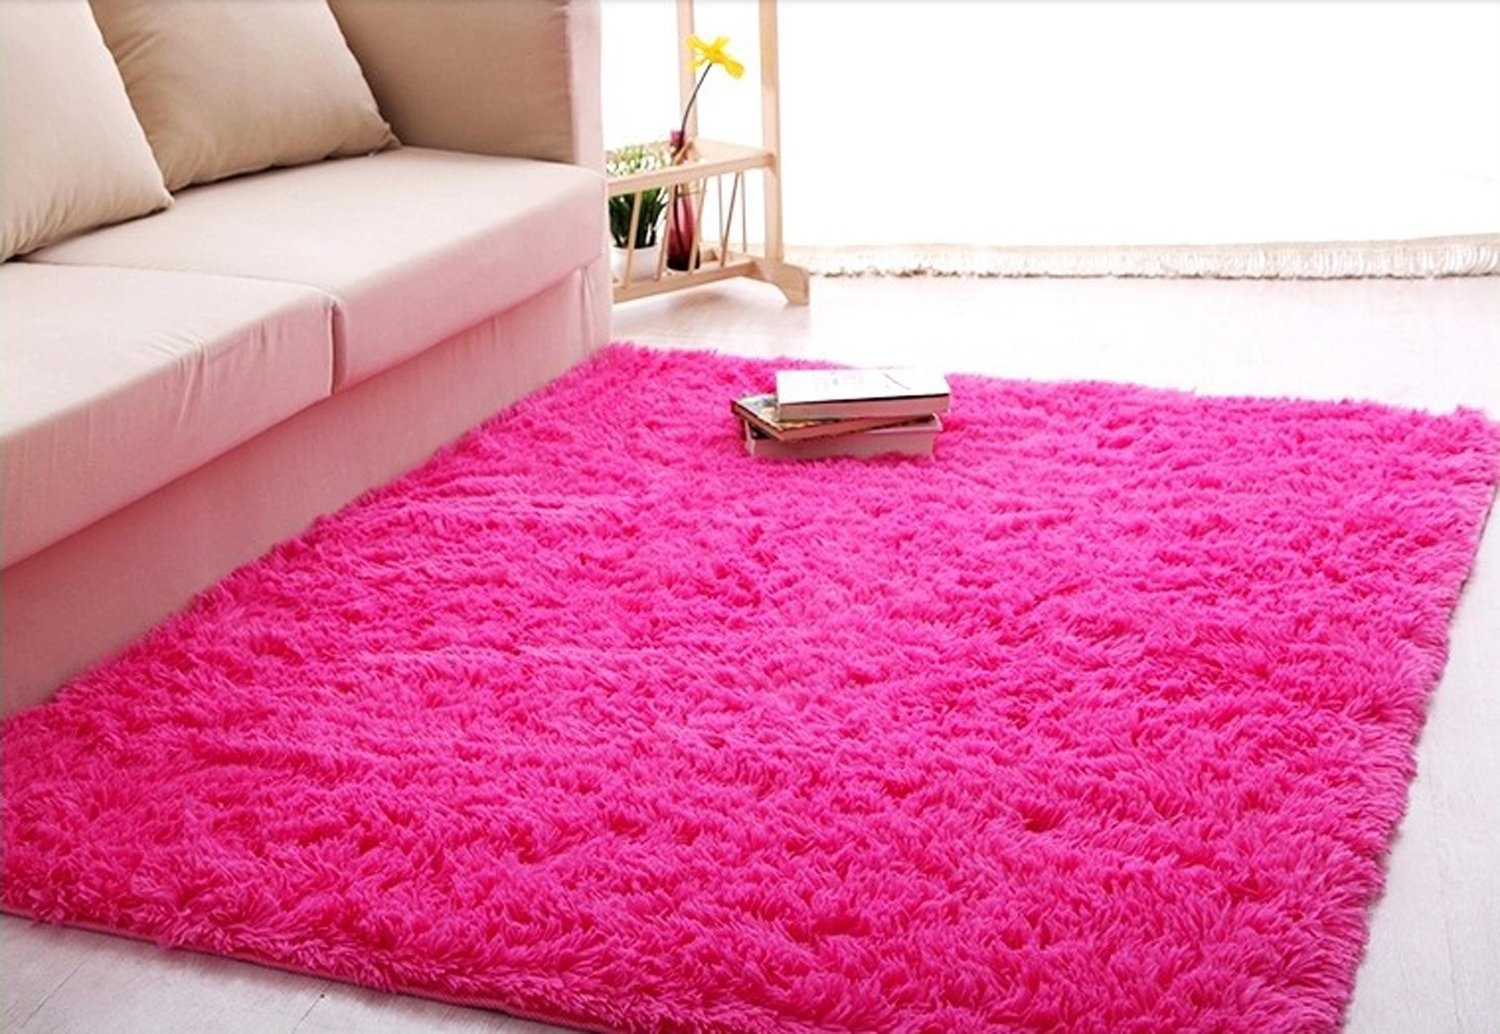 Cheap Pink Rug Roselawnlutheran Regarding Cheap Kids Floor Rugs (Image 6 of 15)